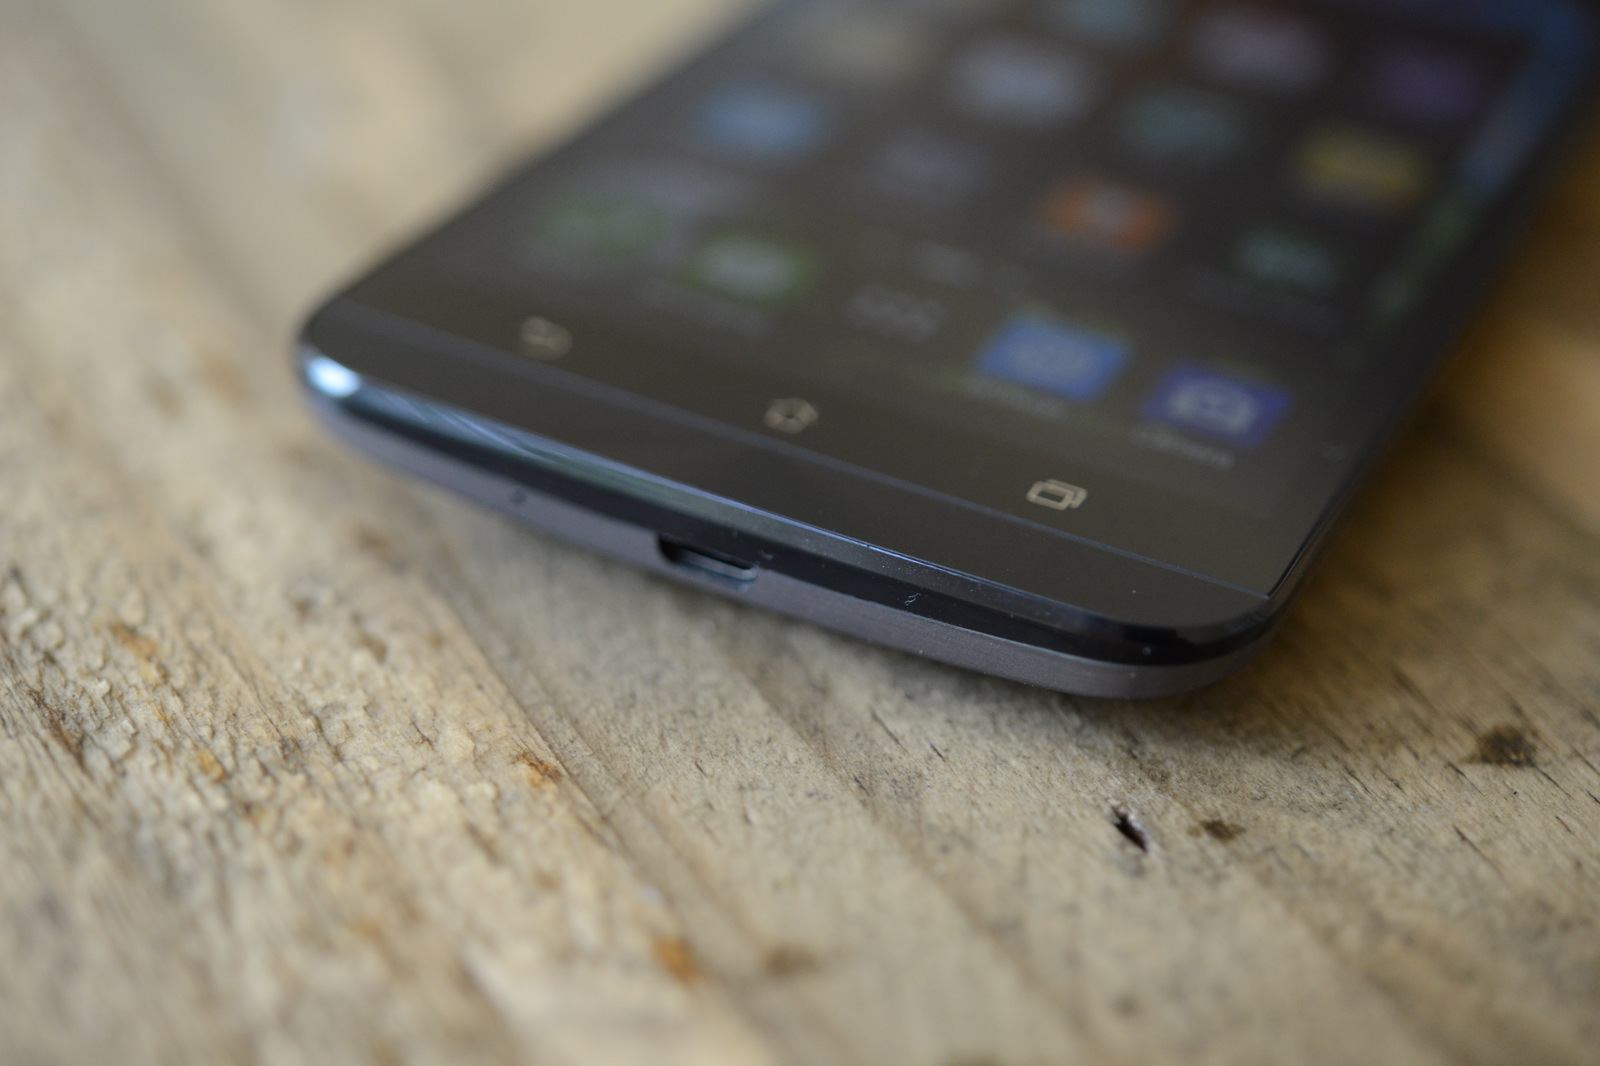 big_zenfone-2-hands-on_4630.jpg